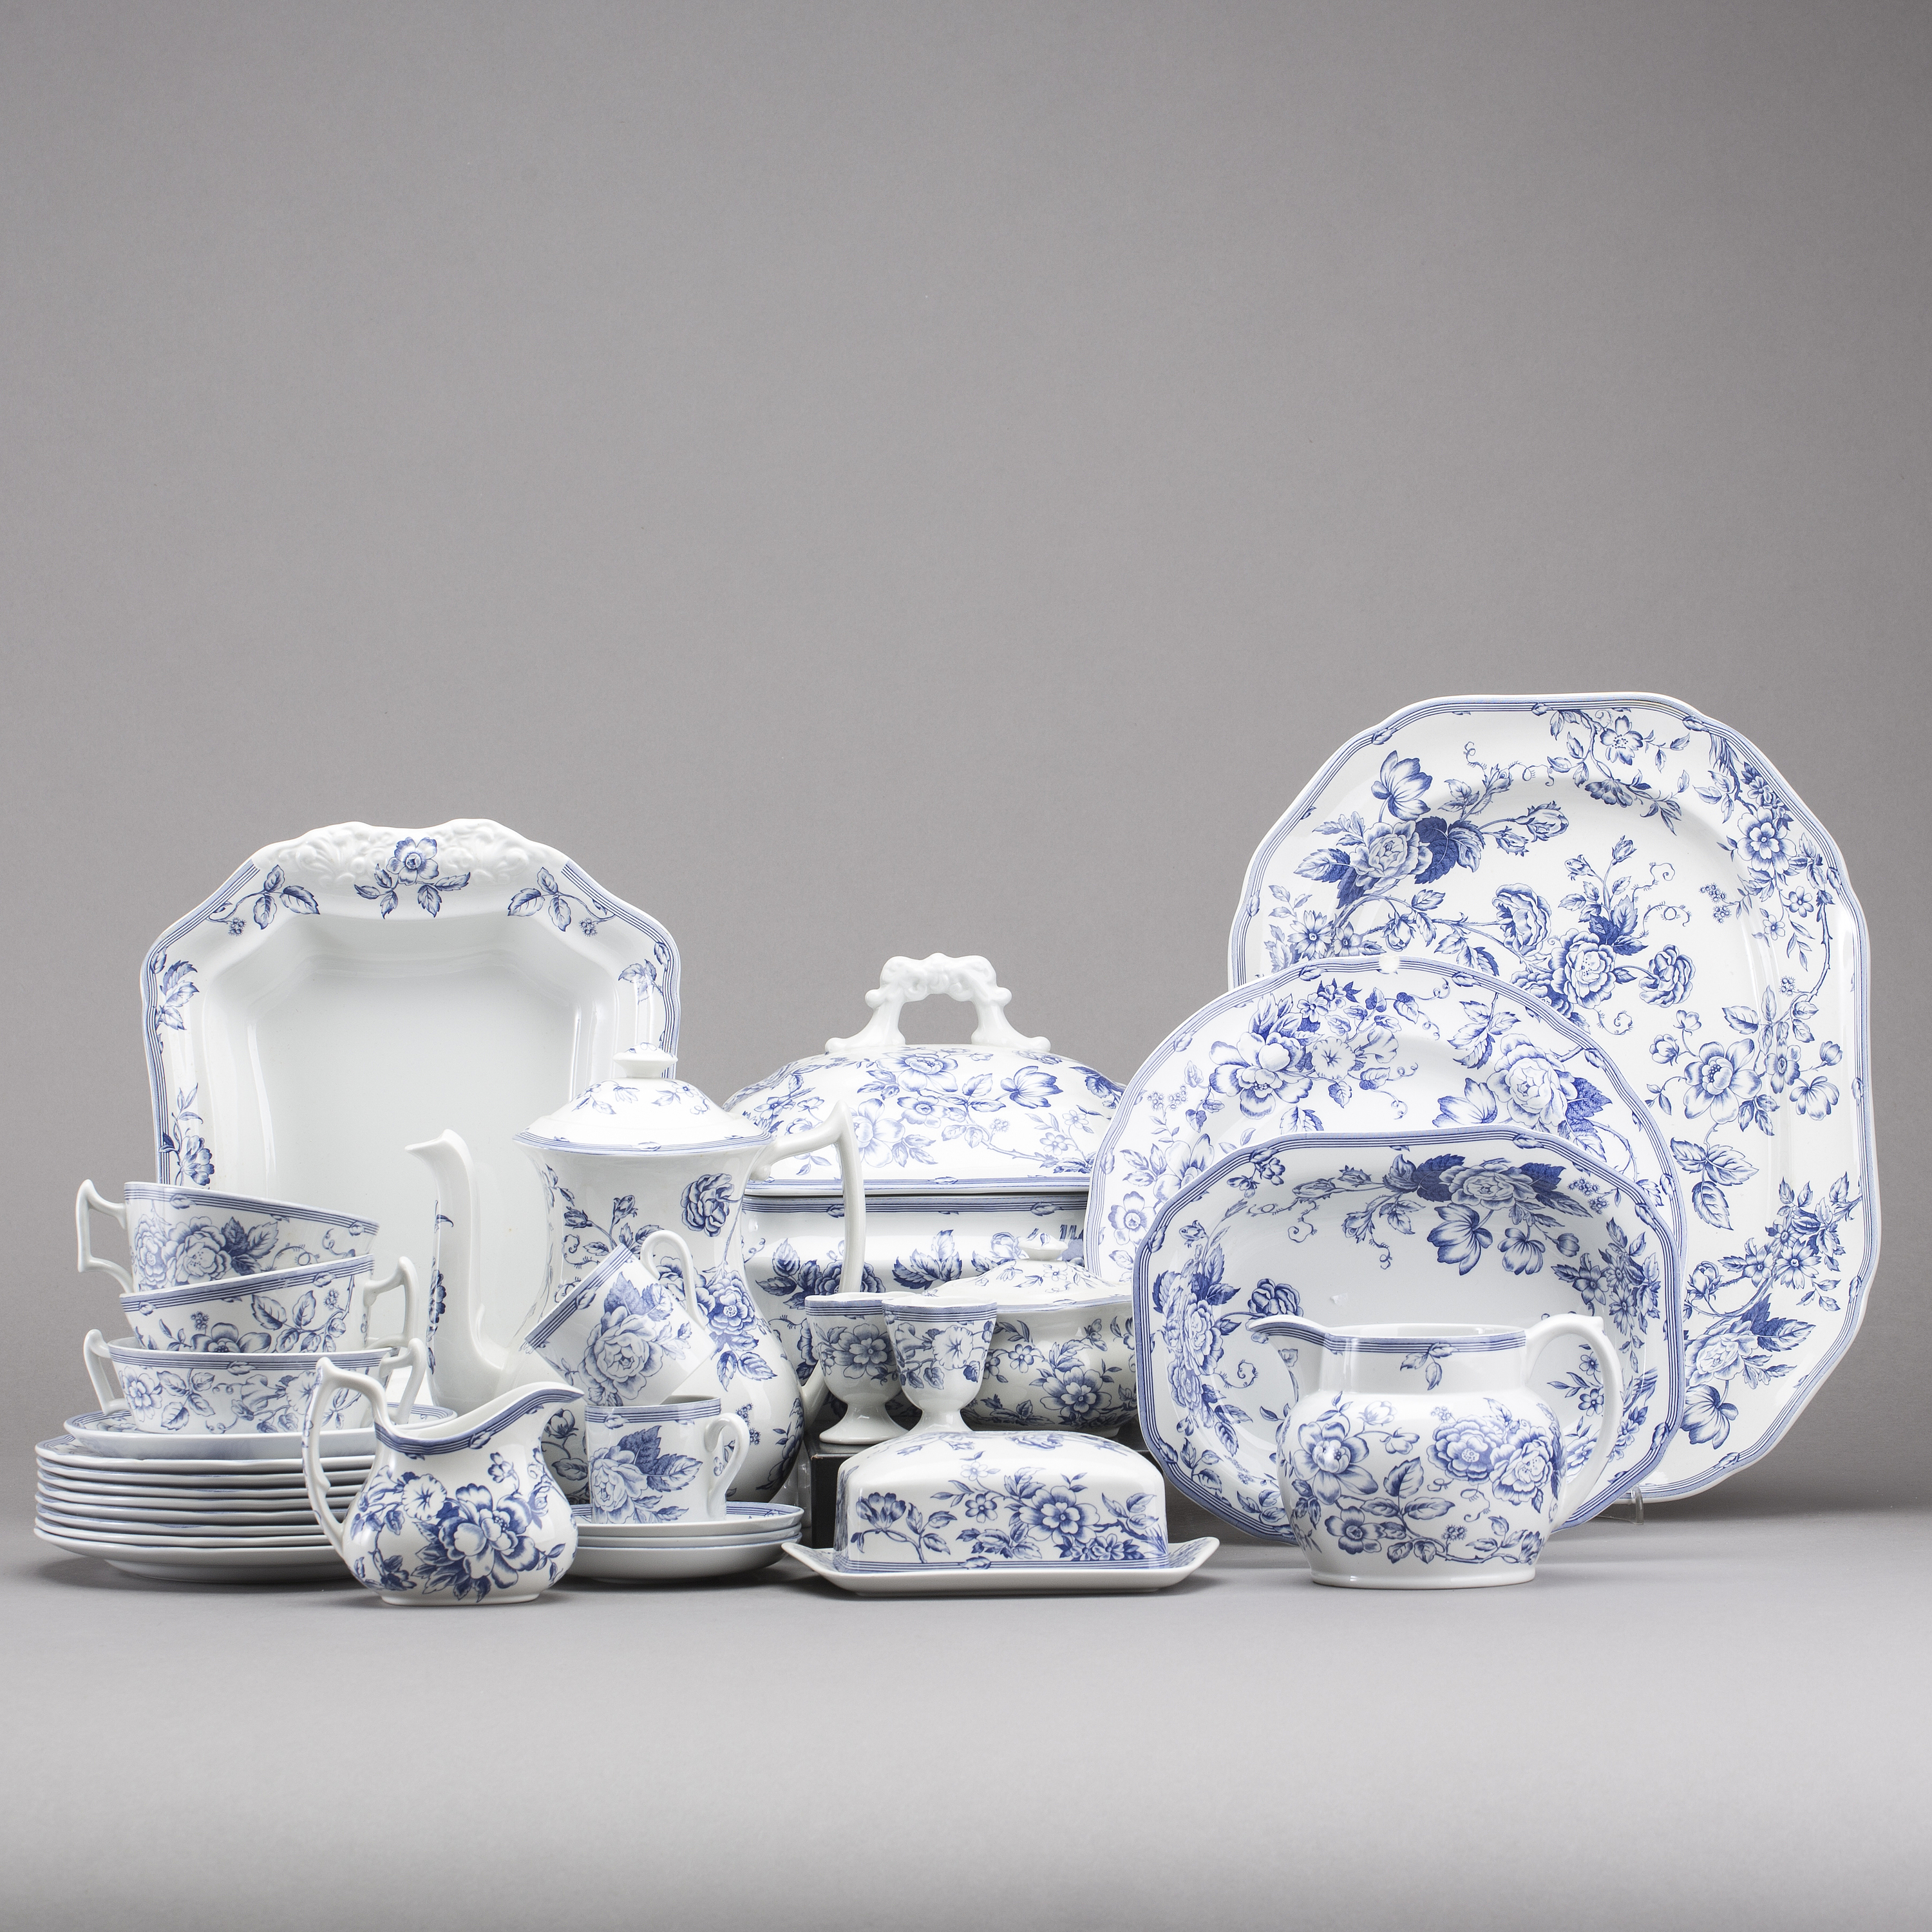 A SET OF 46 PIECES \ CLIFTON\  DINNER SERVICE BY SPODE FOR LAURA ASHLEY. - Bukowskis  sc 1 st  Bukowskis & A SET OF 46 PIECES \